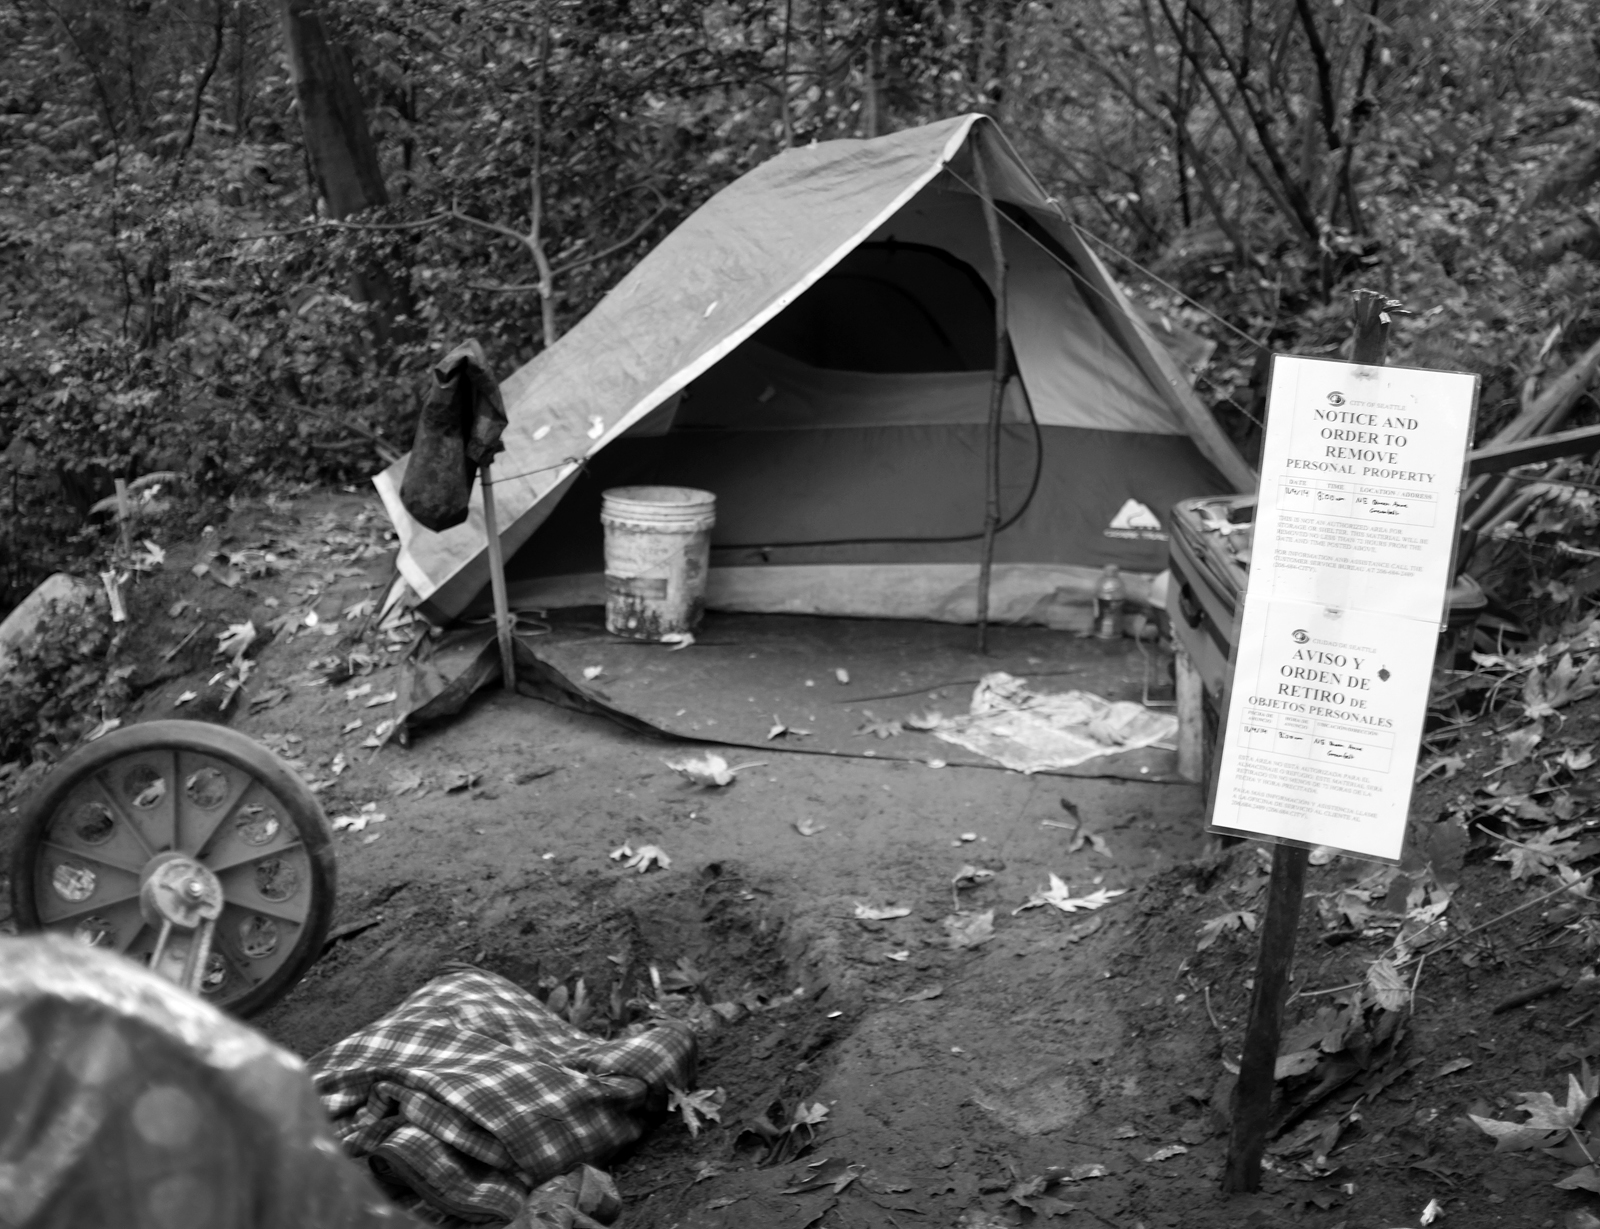 "A sign ""Notice and Order to Remove"" in front of a tent surrounded by detritus in a woody area"